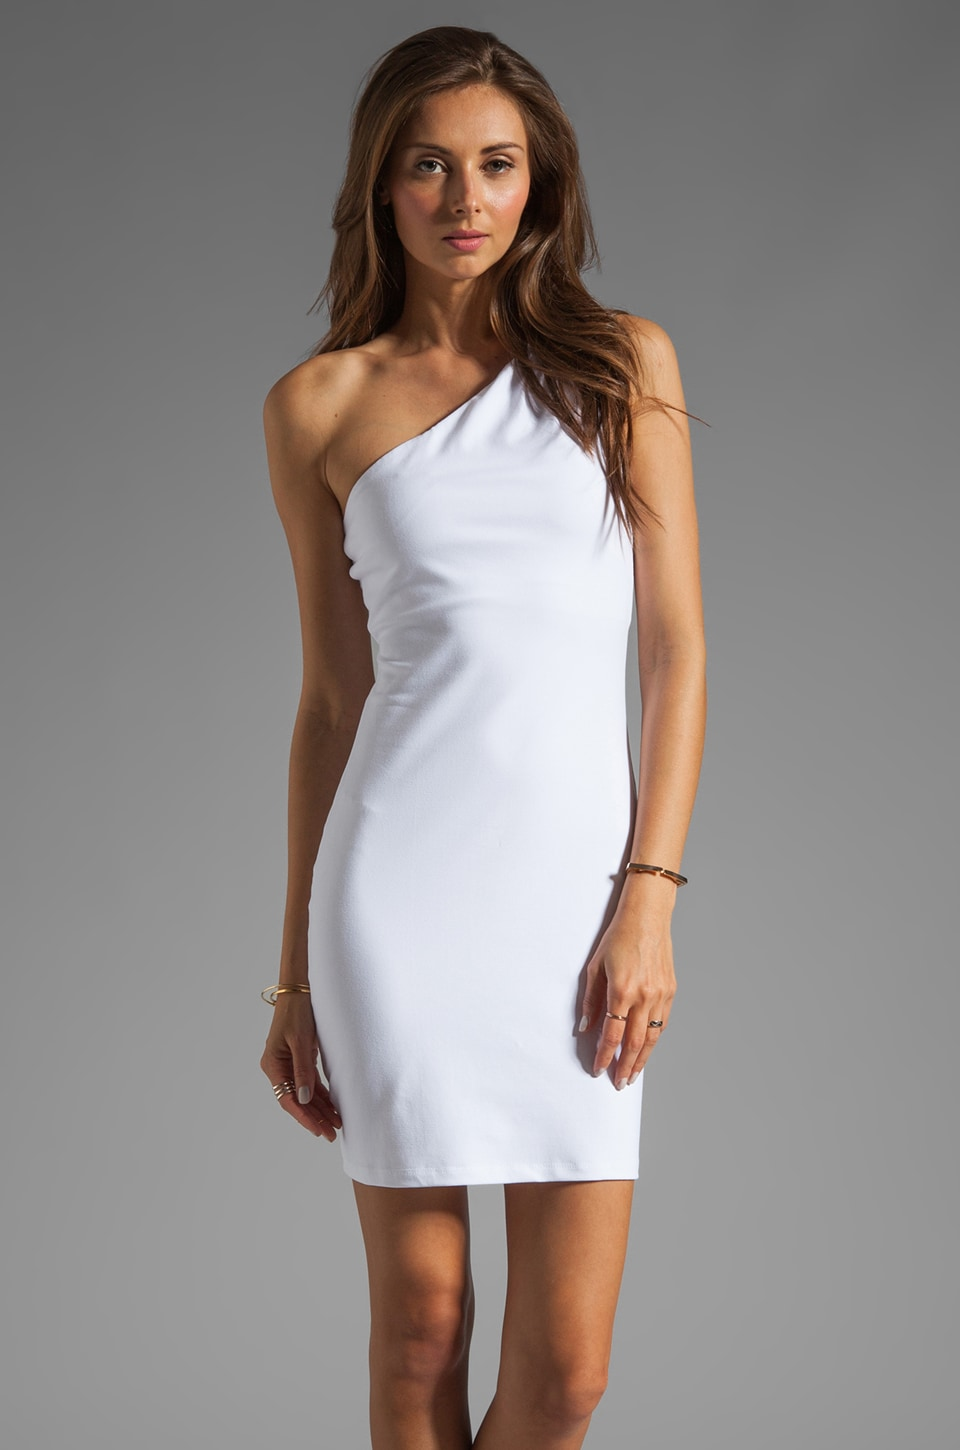 Susana Monaco One Shoulder Dress in Sugar